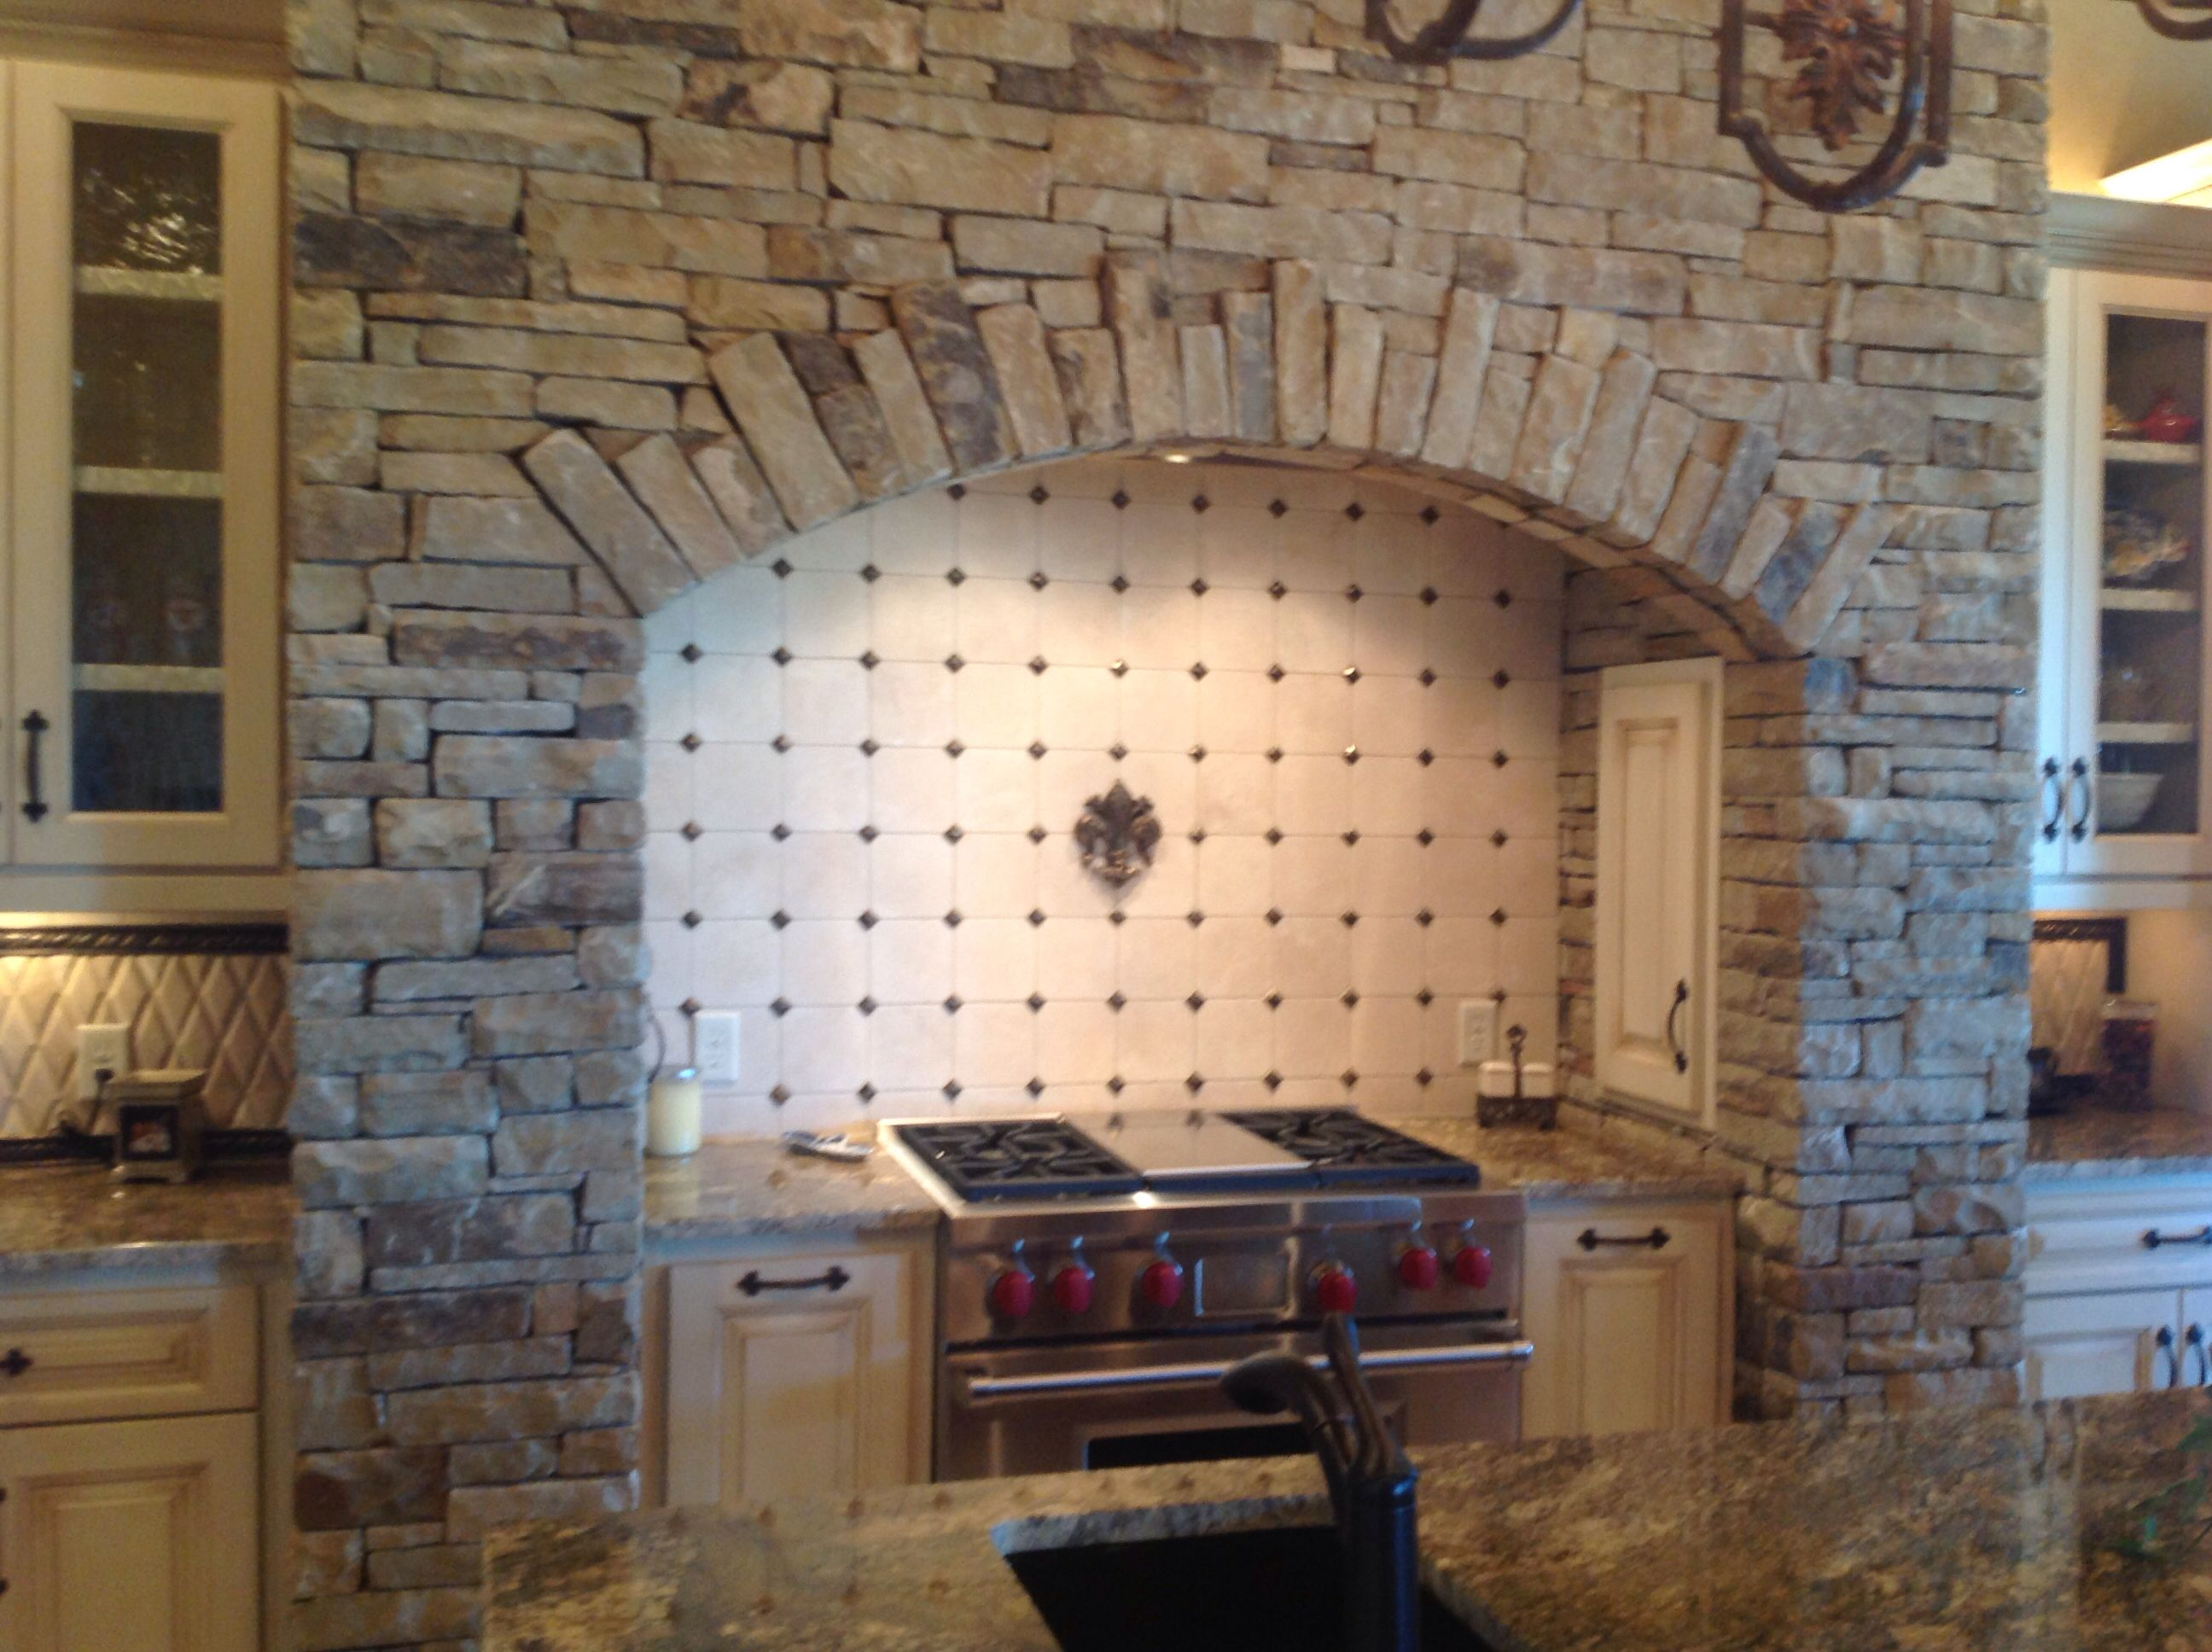 cooktop stone surround decorating pinterest stove kitchen island with built in stove and oven kitchen island with stove and oven ranges